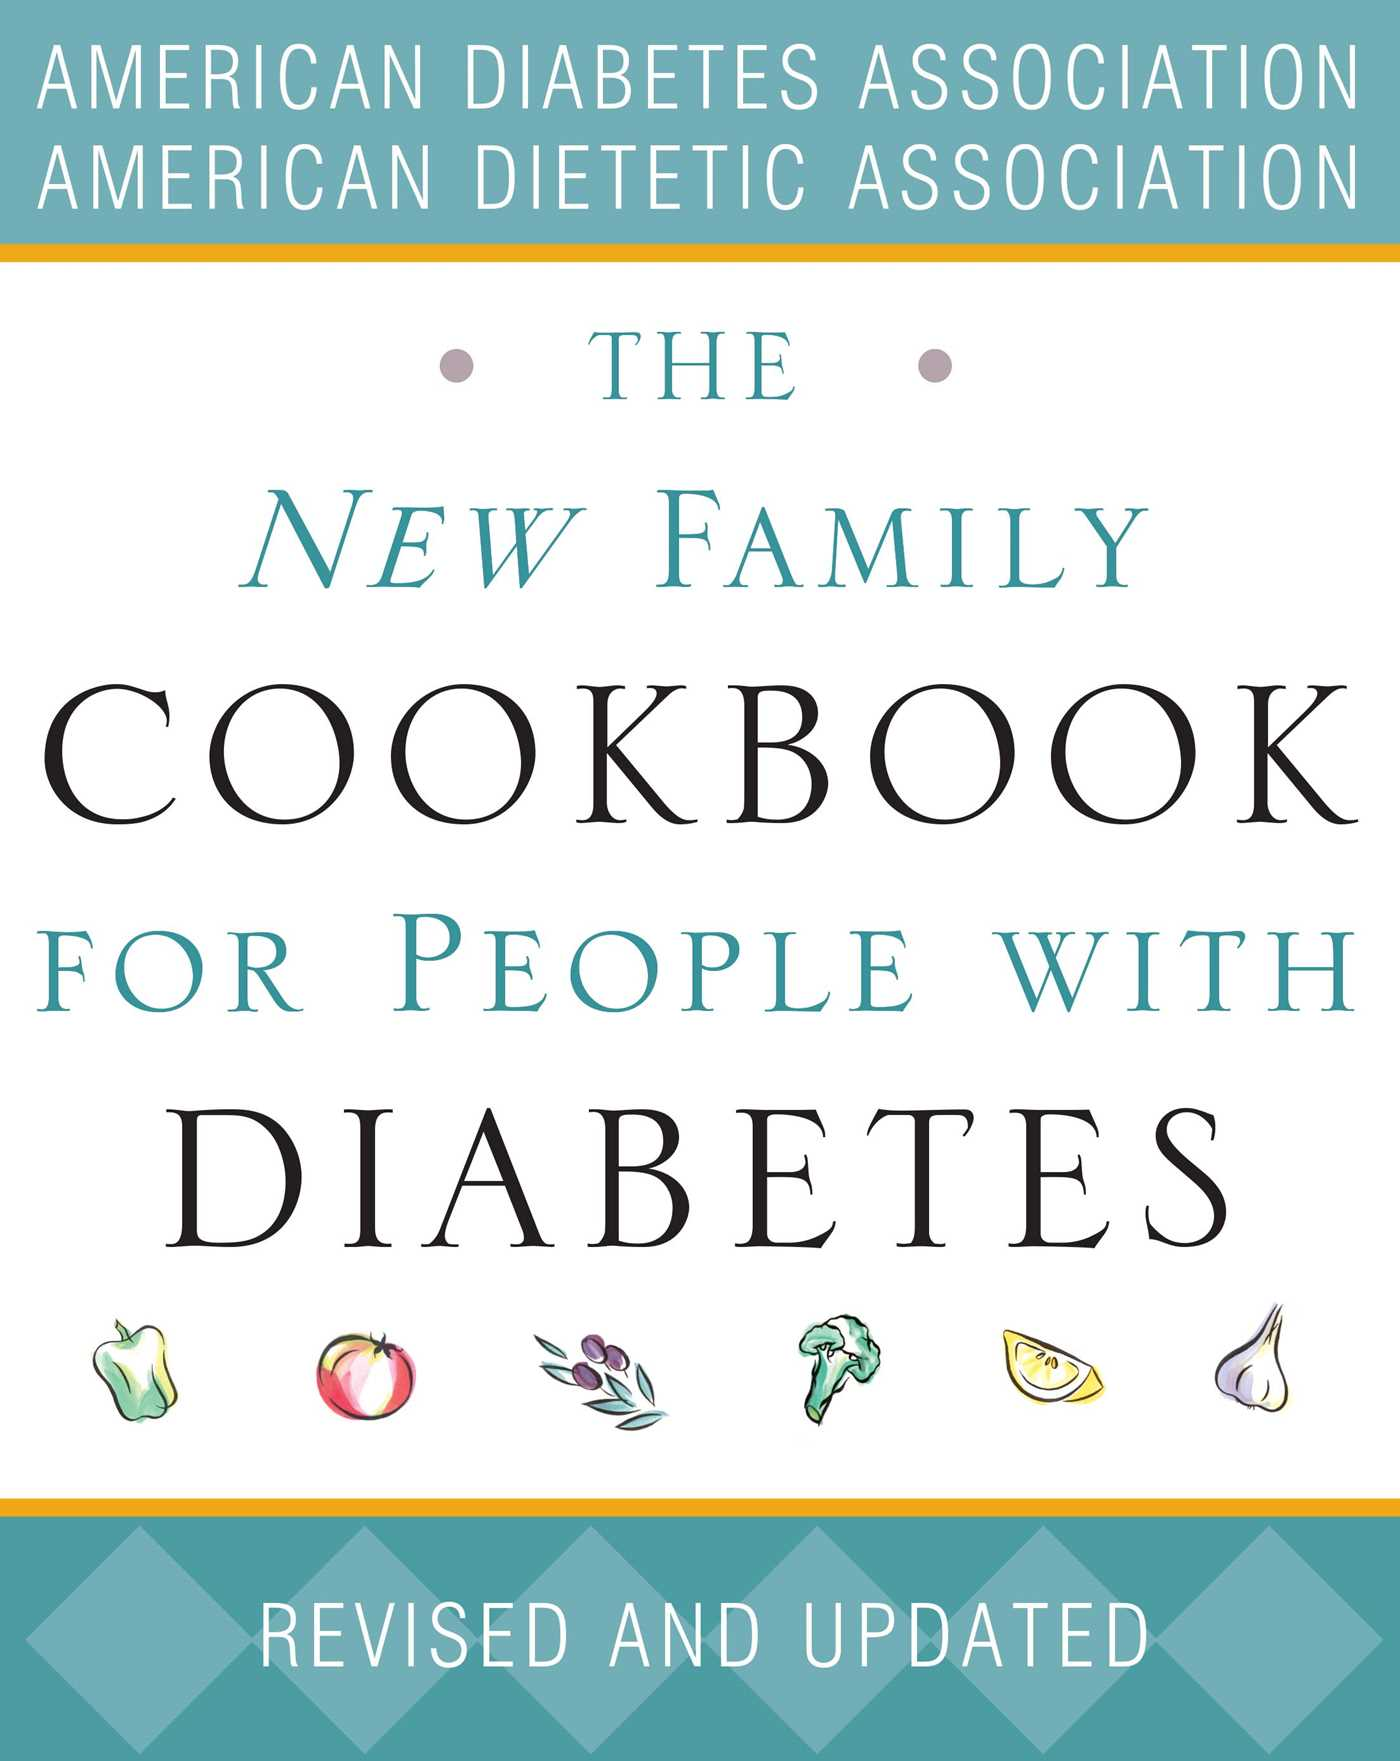 The-new-family-cookbook-for-people-with-diabetes-9781416536079_hr